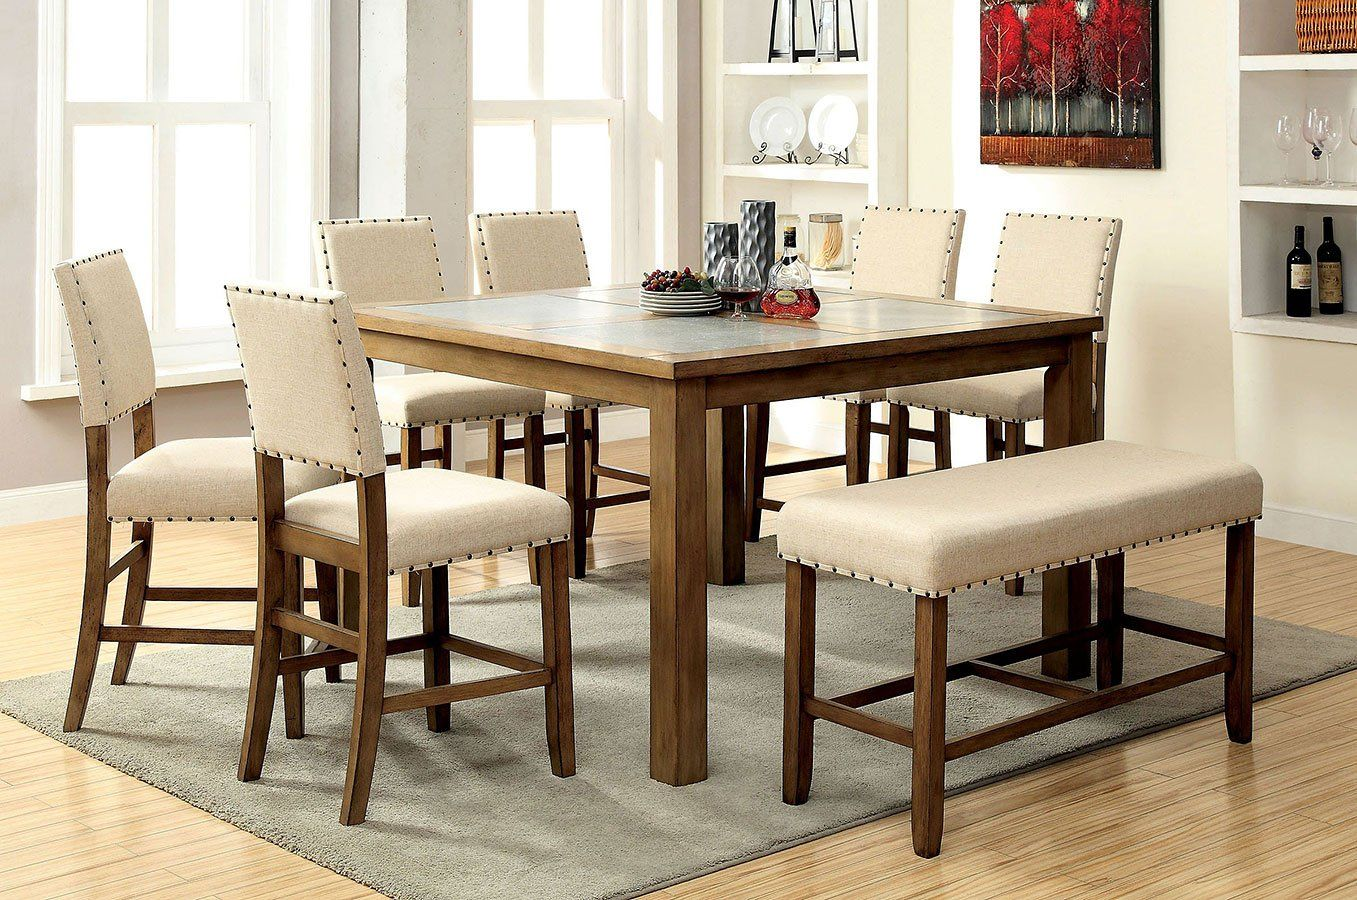 Melston Ii Counter Height Dining Room Set W Bench Dining Room Small Counter Height Dining Table Counter Height Dining Table Set